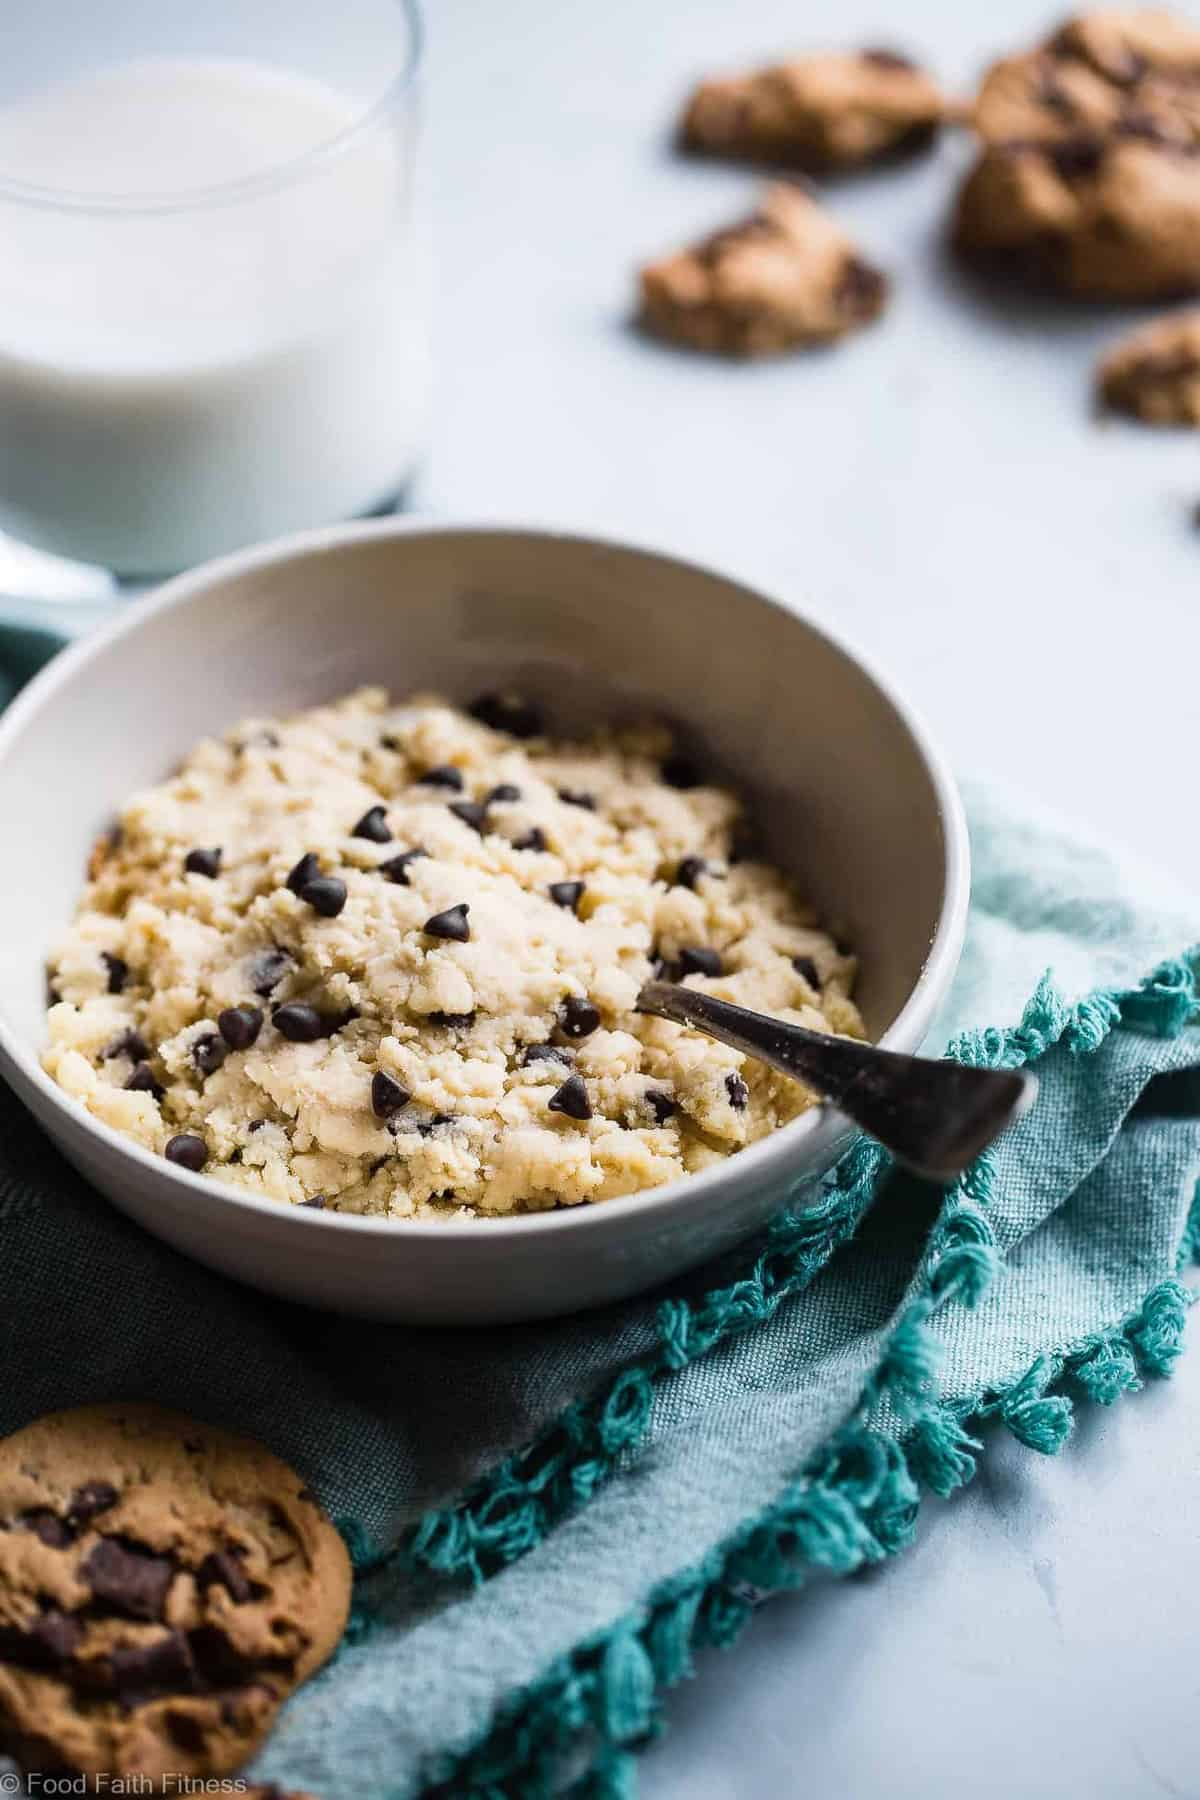 Healthy Protein Powder Cookie Dough -  This 5 ingredient healthy, edible cookie dough is gluten free, paleo/vegan friendly and ready in 5 minutes! It packs 20g of protein and only 200 calories so you can eat the whole bowl! | #Foodfaithfitness | #Glutenfree #Healthy #Paleo #Vegan #Snack